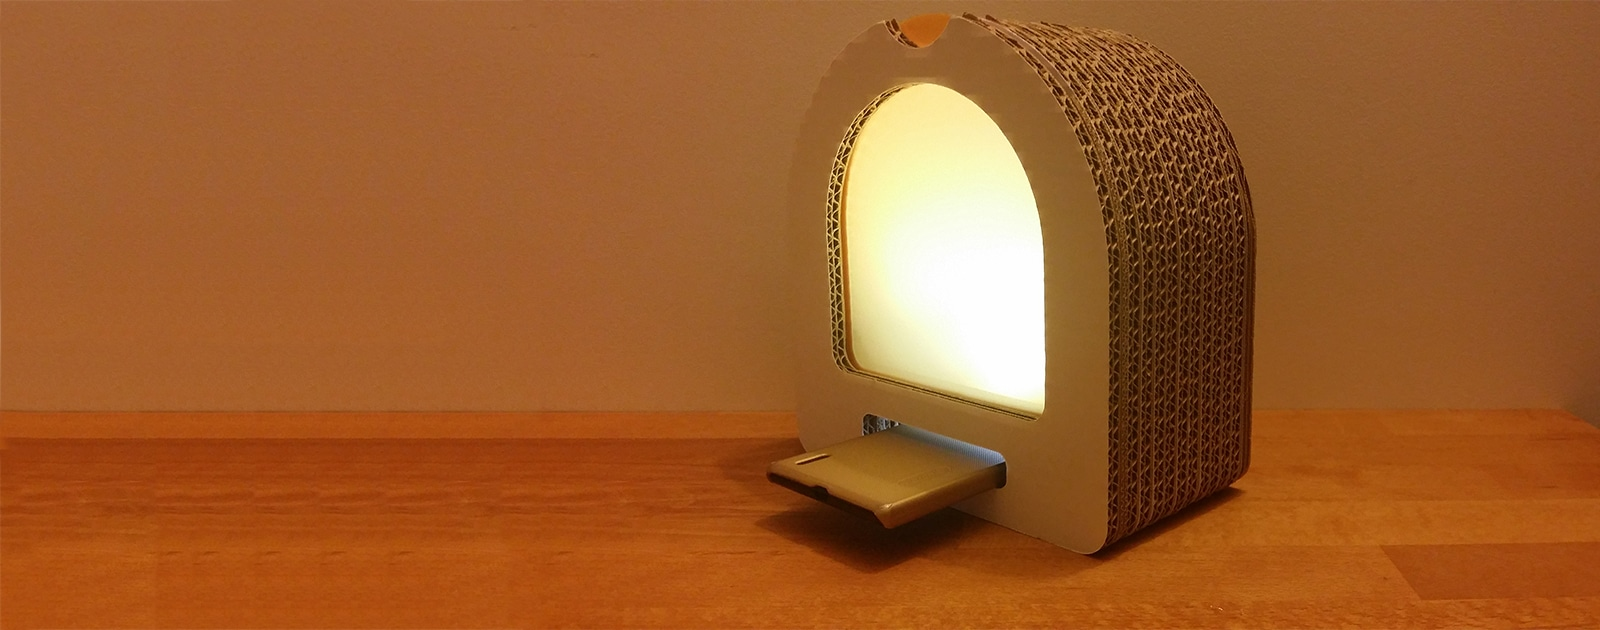 Lampe recyclable